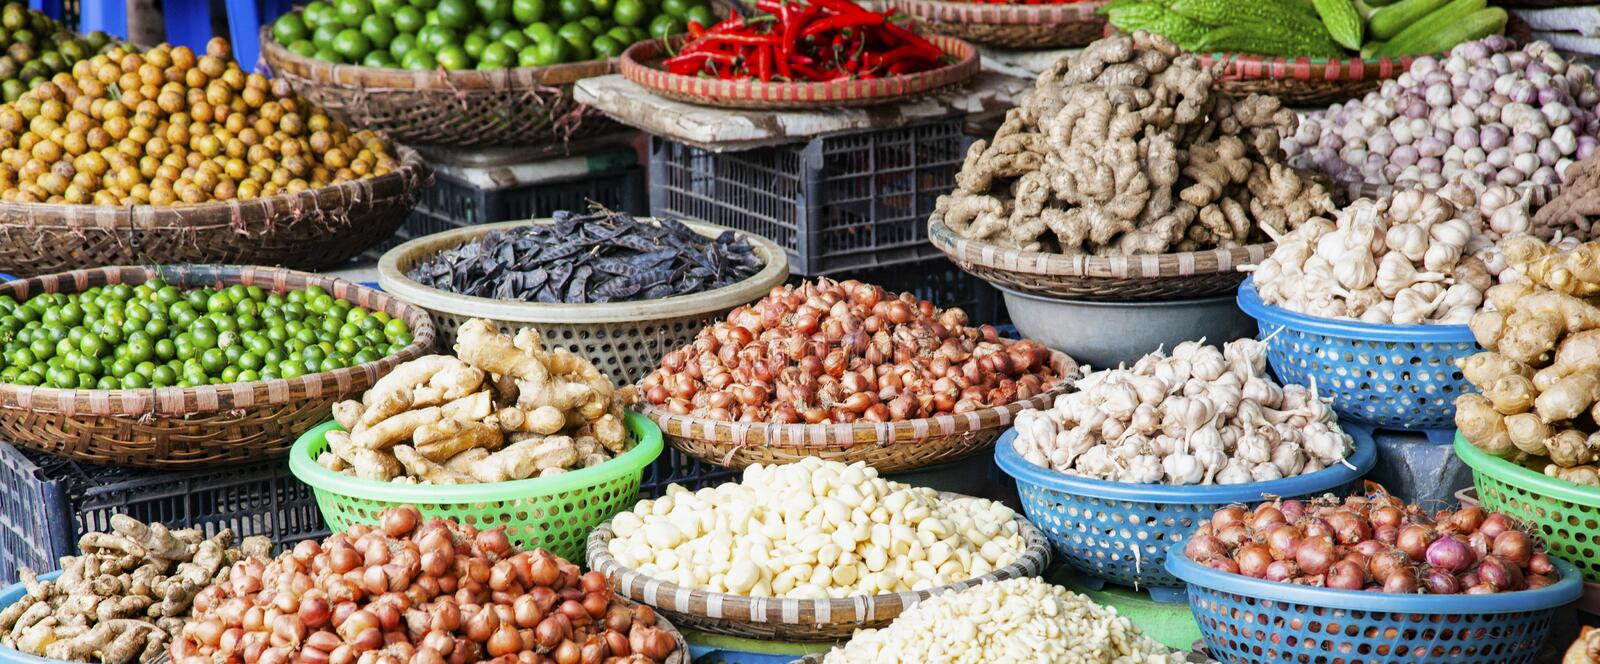 tropical spices and fruits sold at a local market in Hanoi & x28;Vietnam stock photos